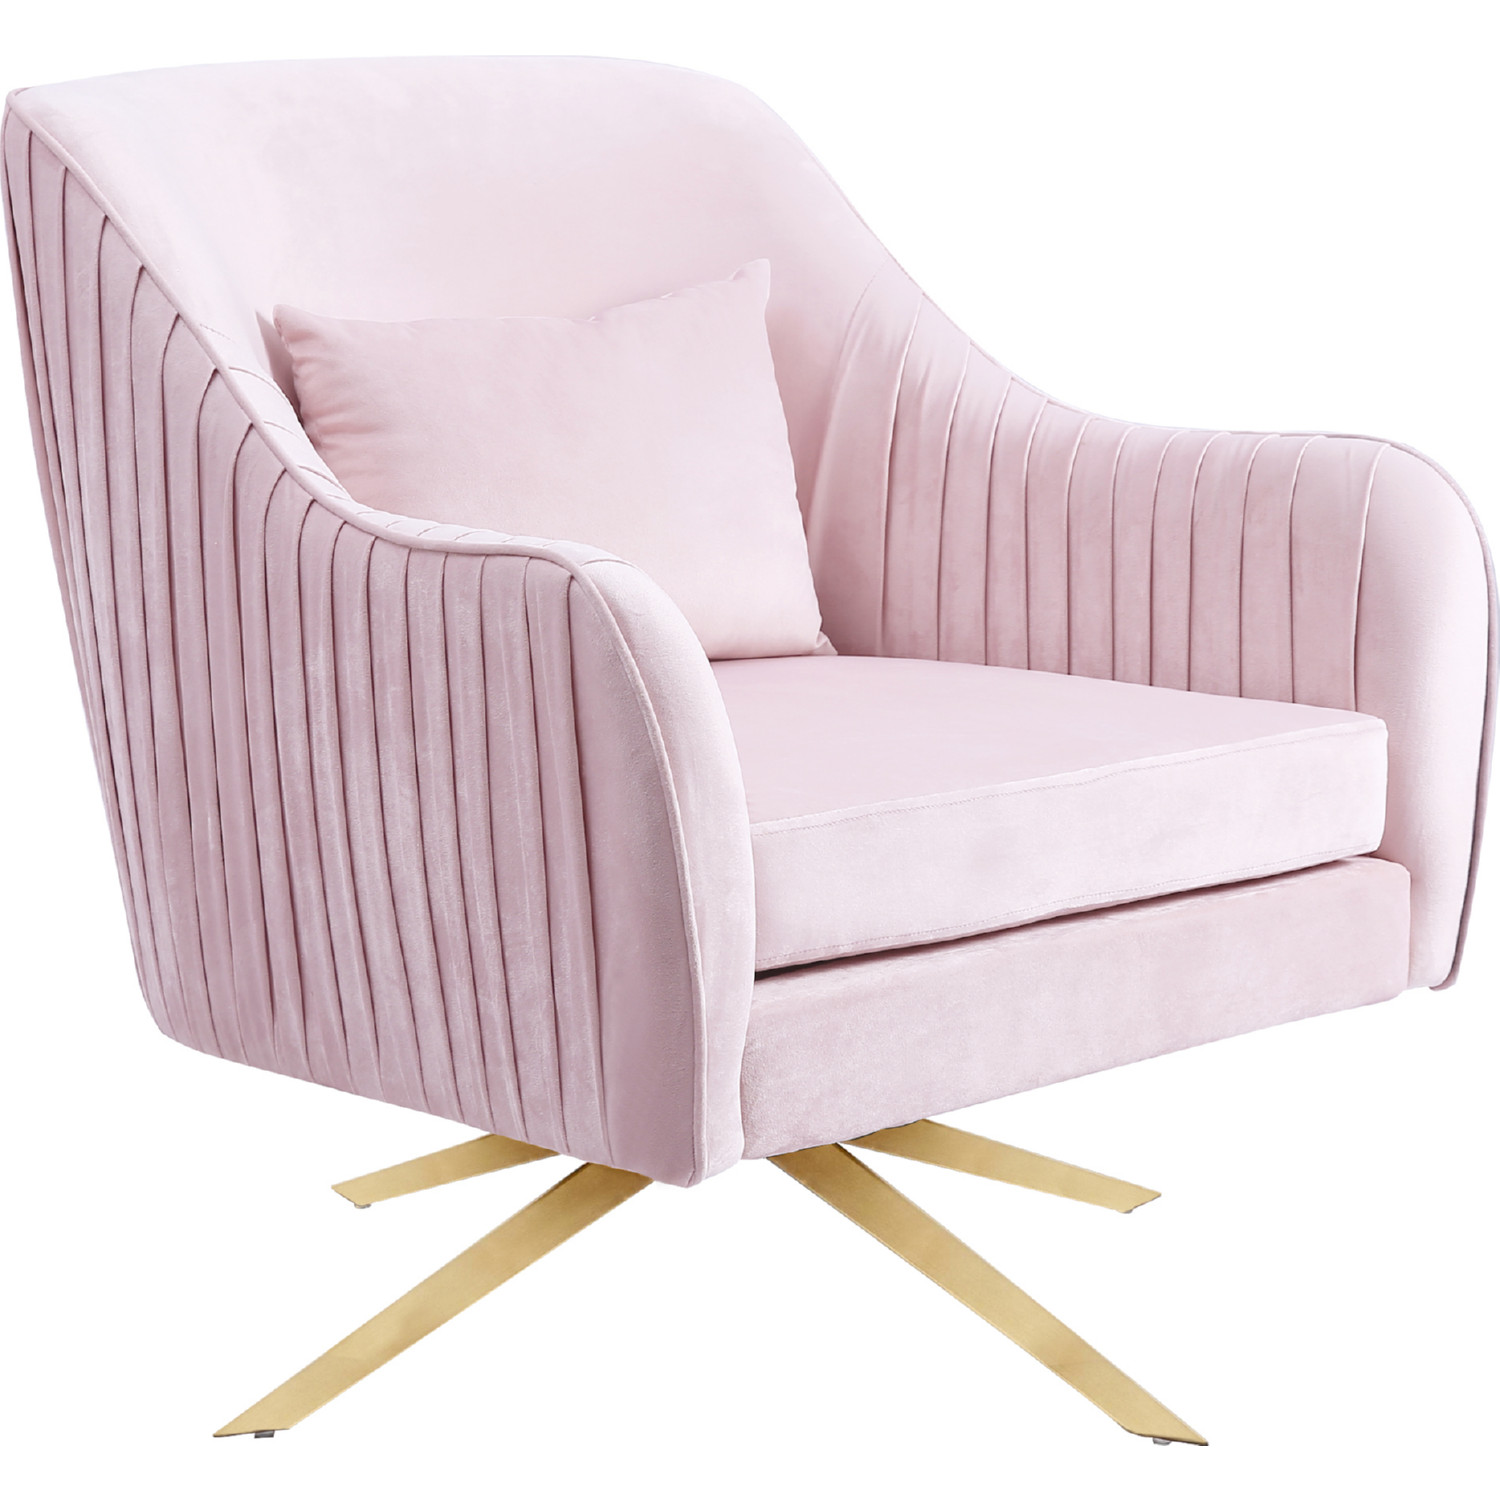 Surprising Paloma Accent Chair In Pink Velvet On Gold Swivel Base By Meridian Furniture Machost Co Dining Chair Design Ideas Machostcouk